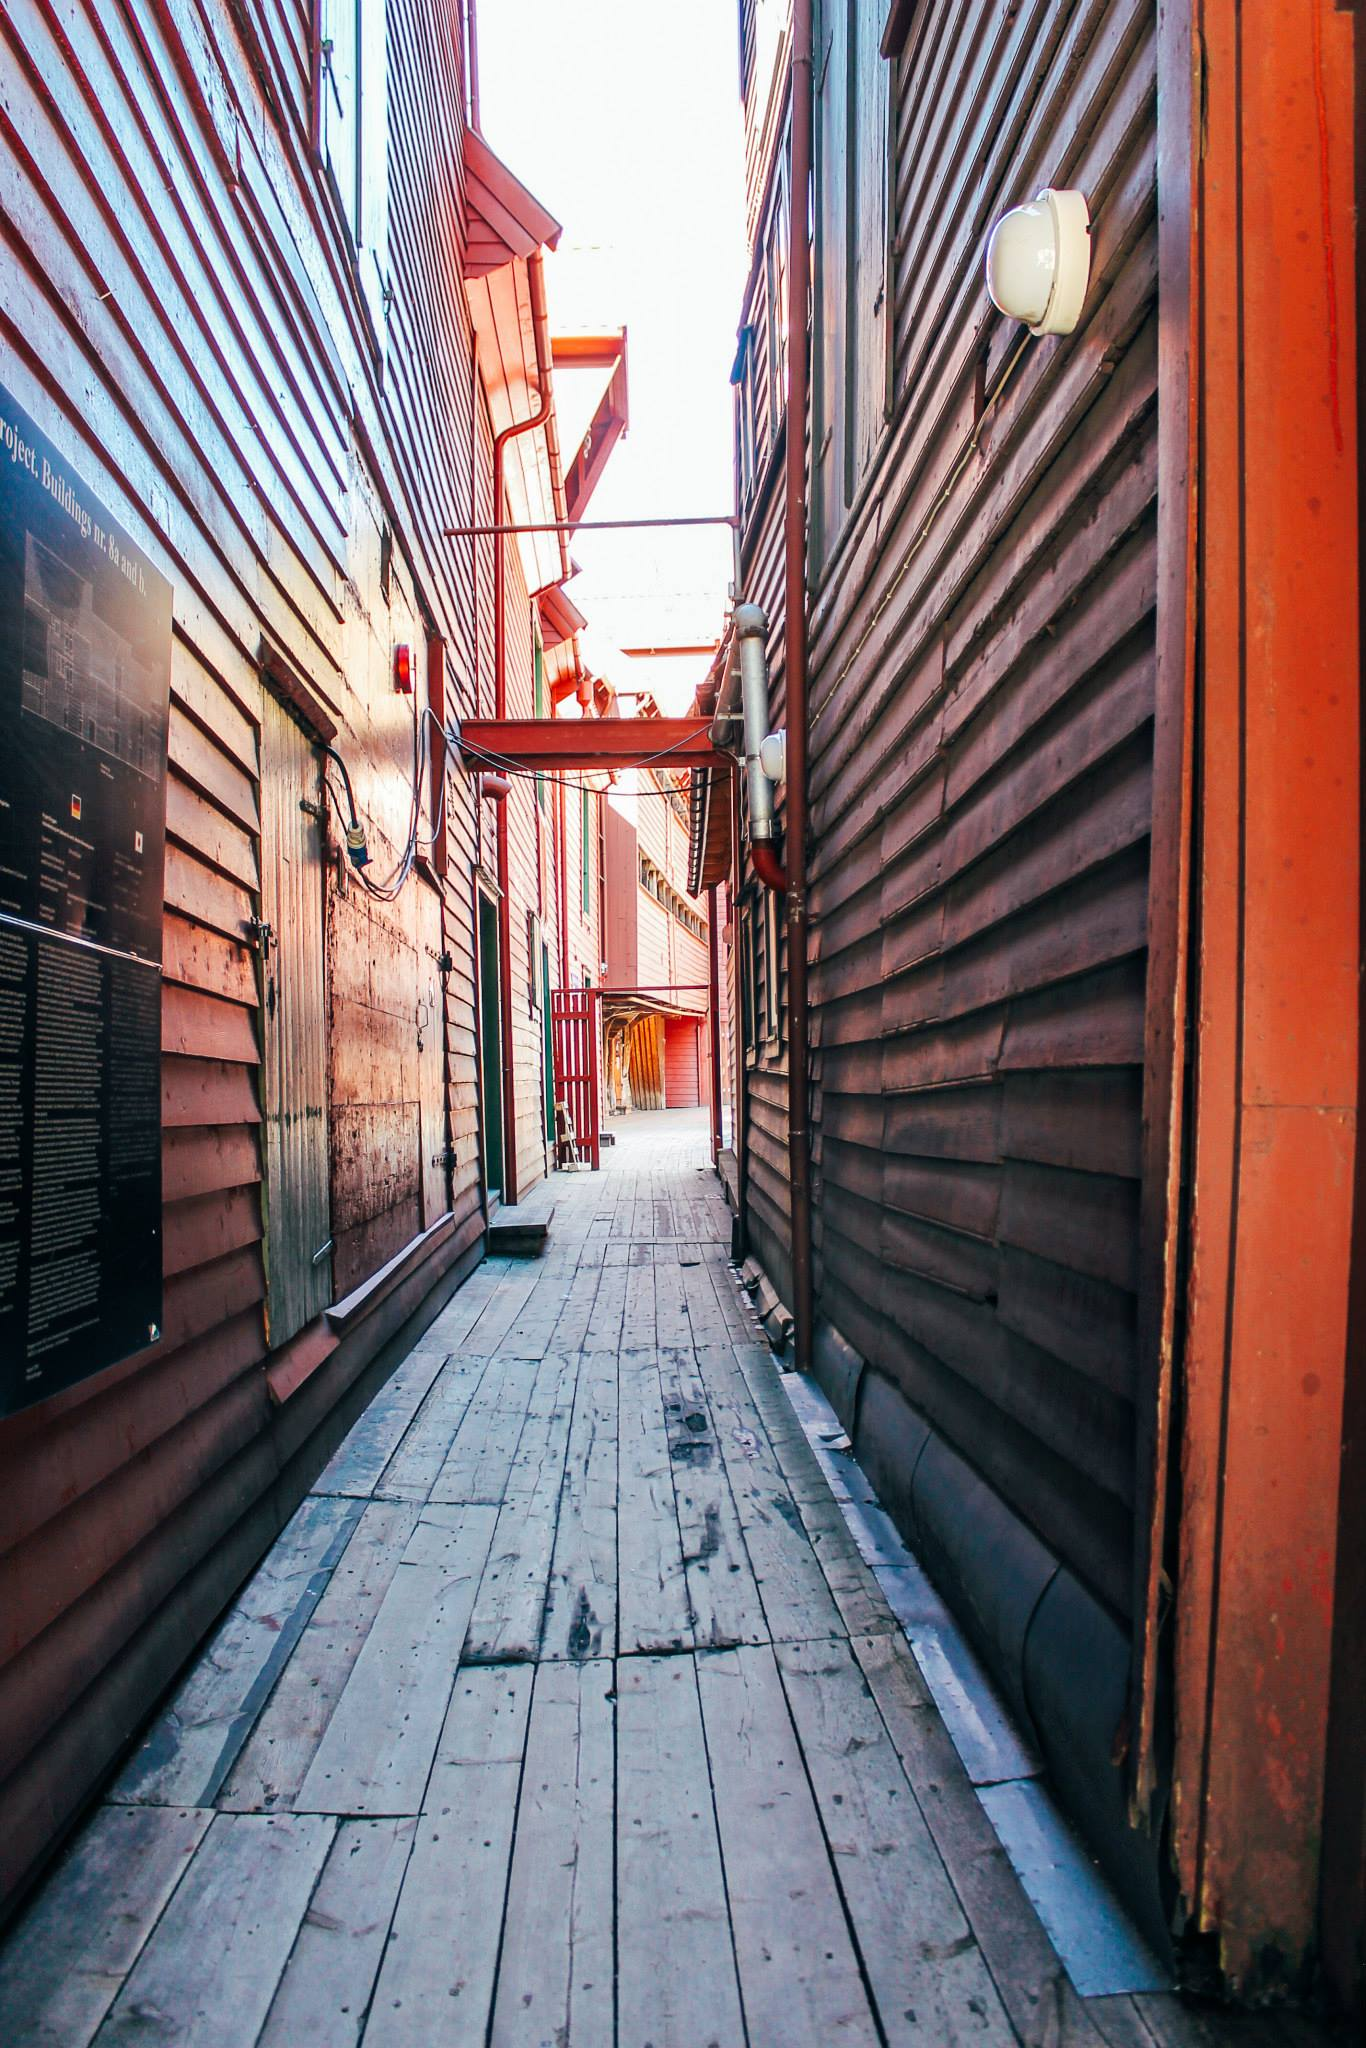 The UNESCO World Heritage Site of Bryggen... In Bergen, Norway. (21)